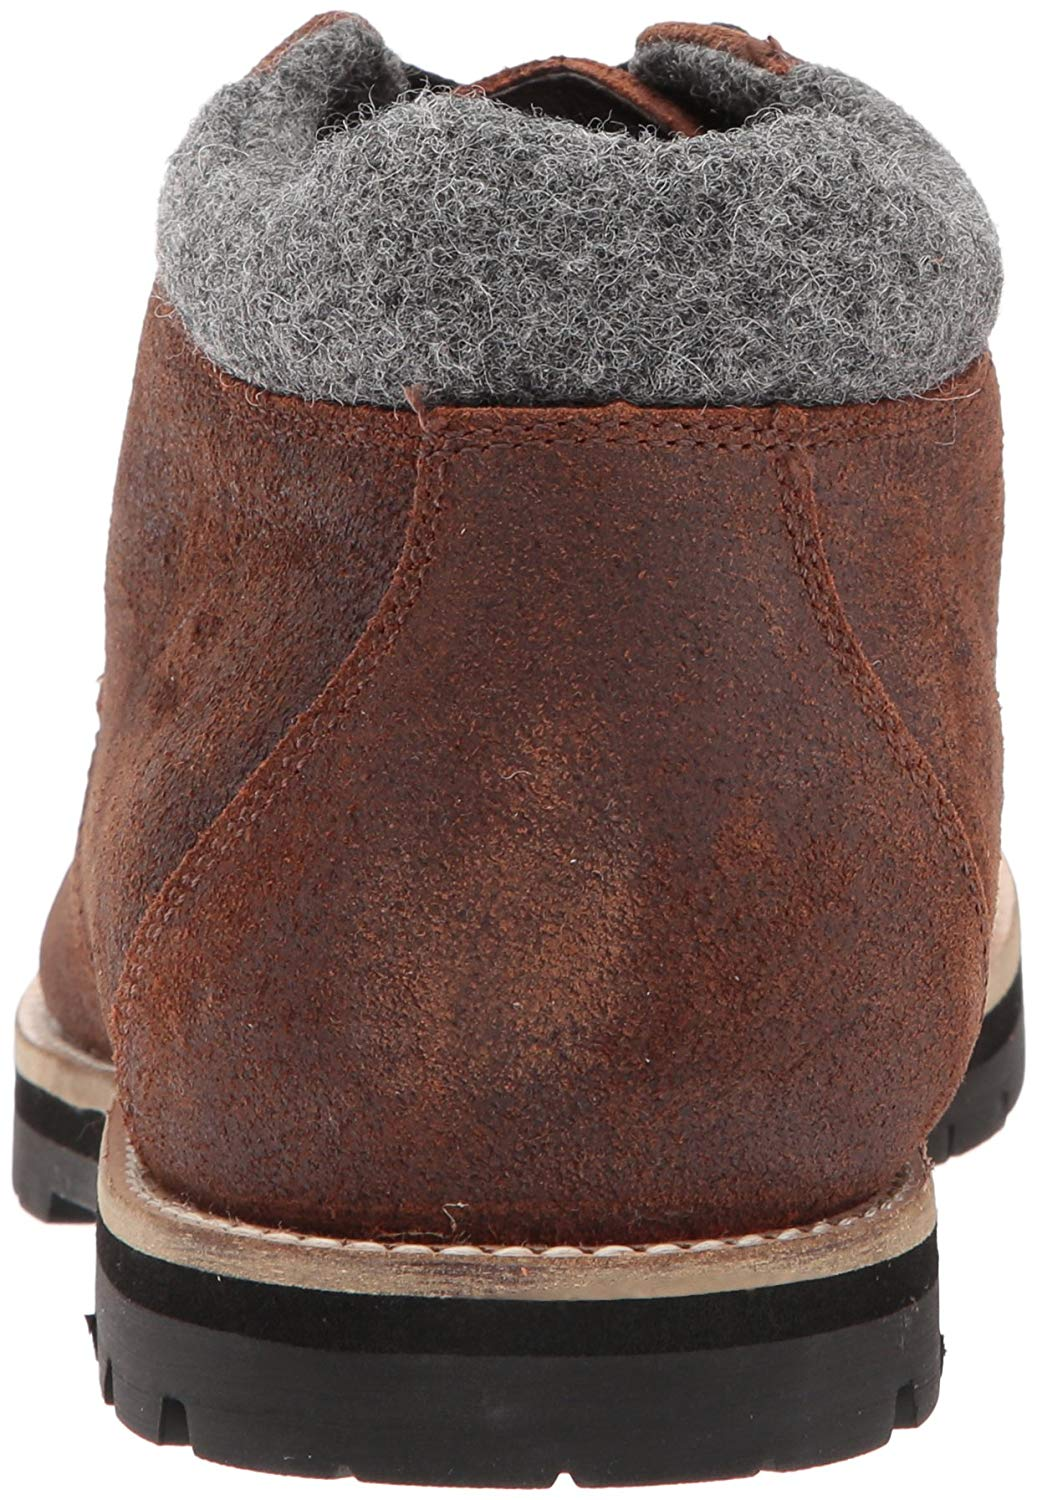 Woolrich Boots 9 Us 5 Uk Mens 9 Chocolate 5rw5ZS